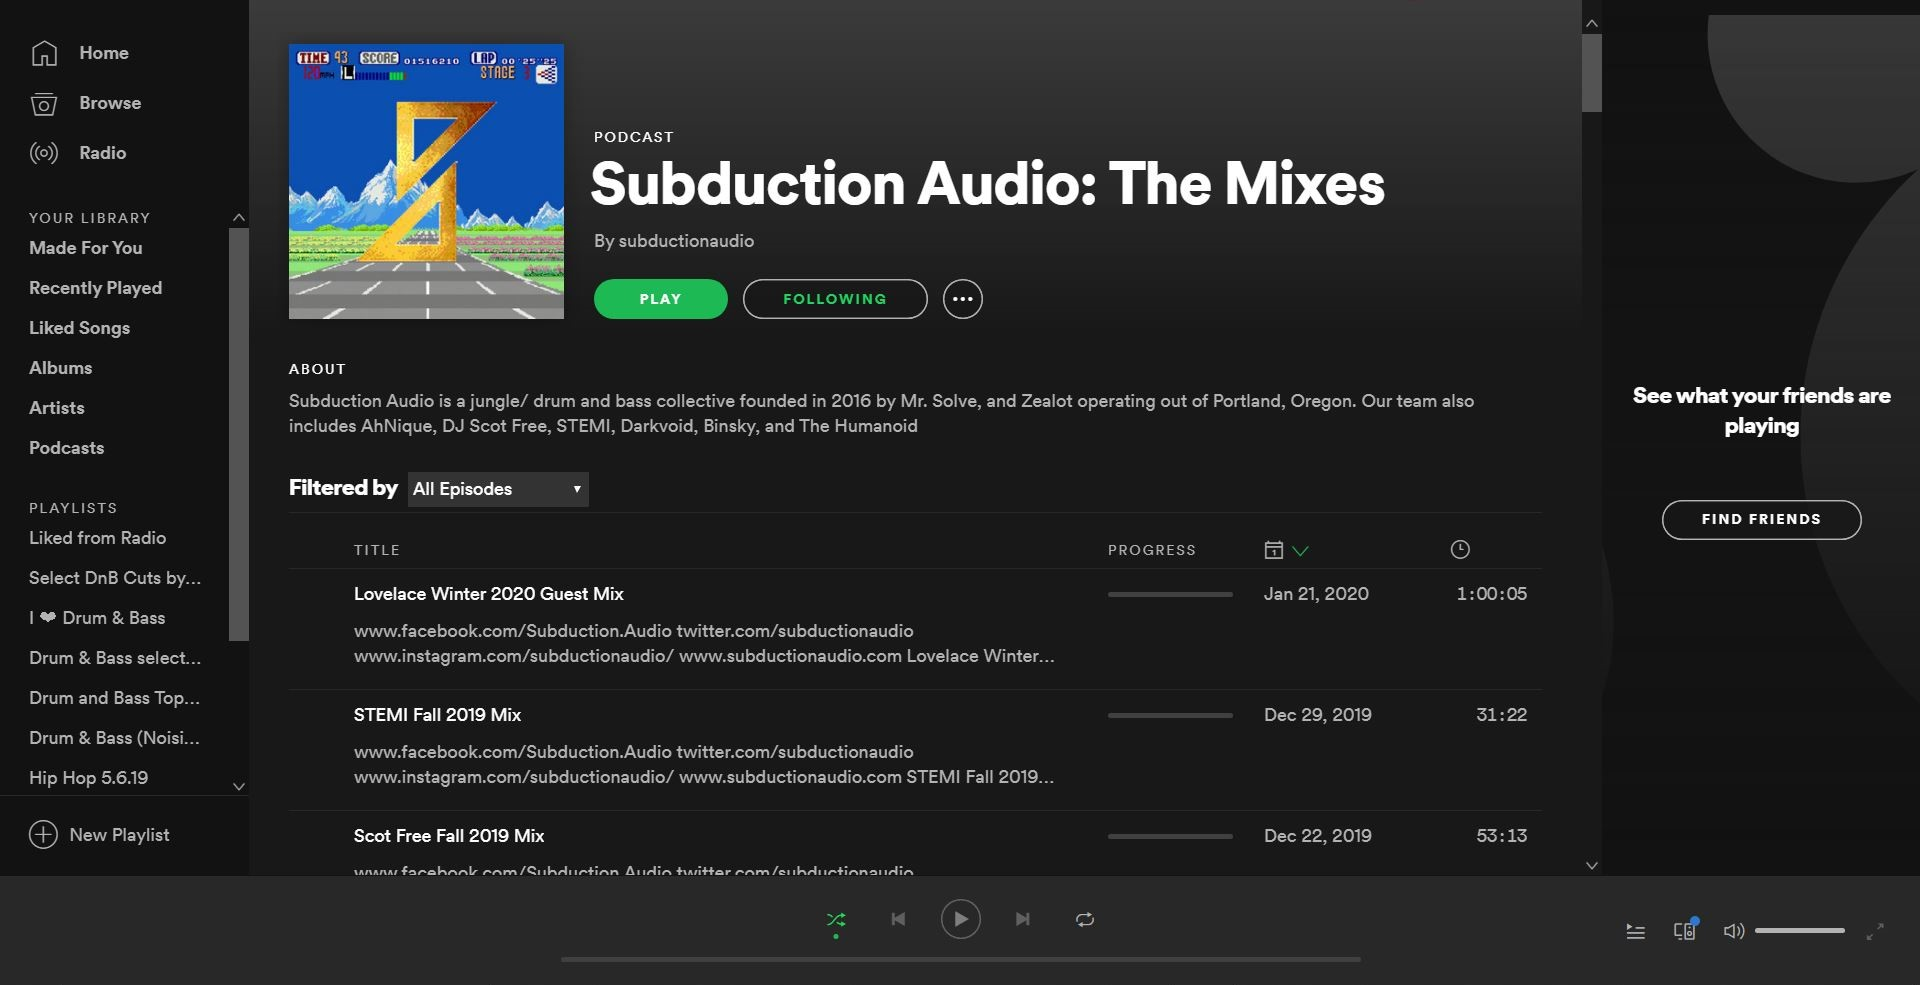 Subduction Audio podcast now on Spotify